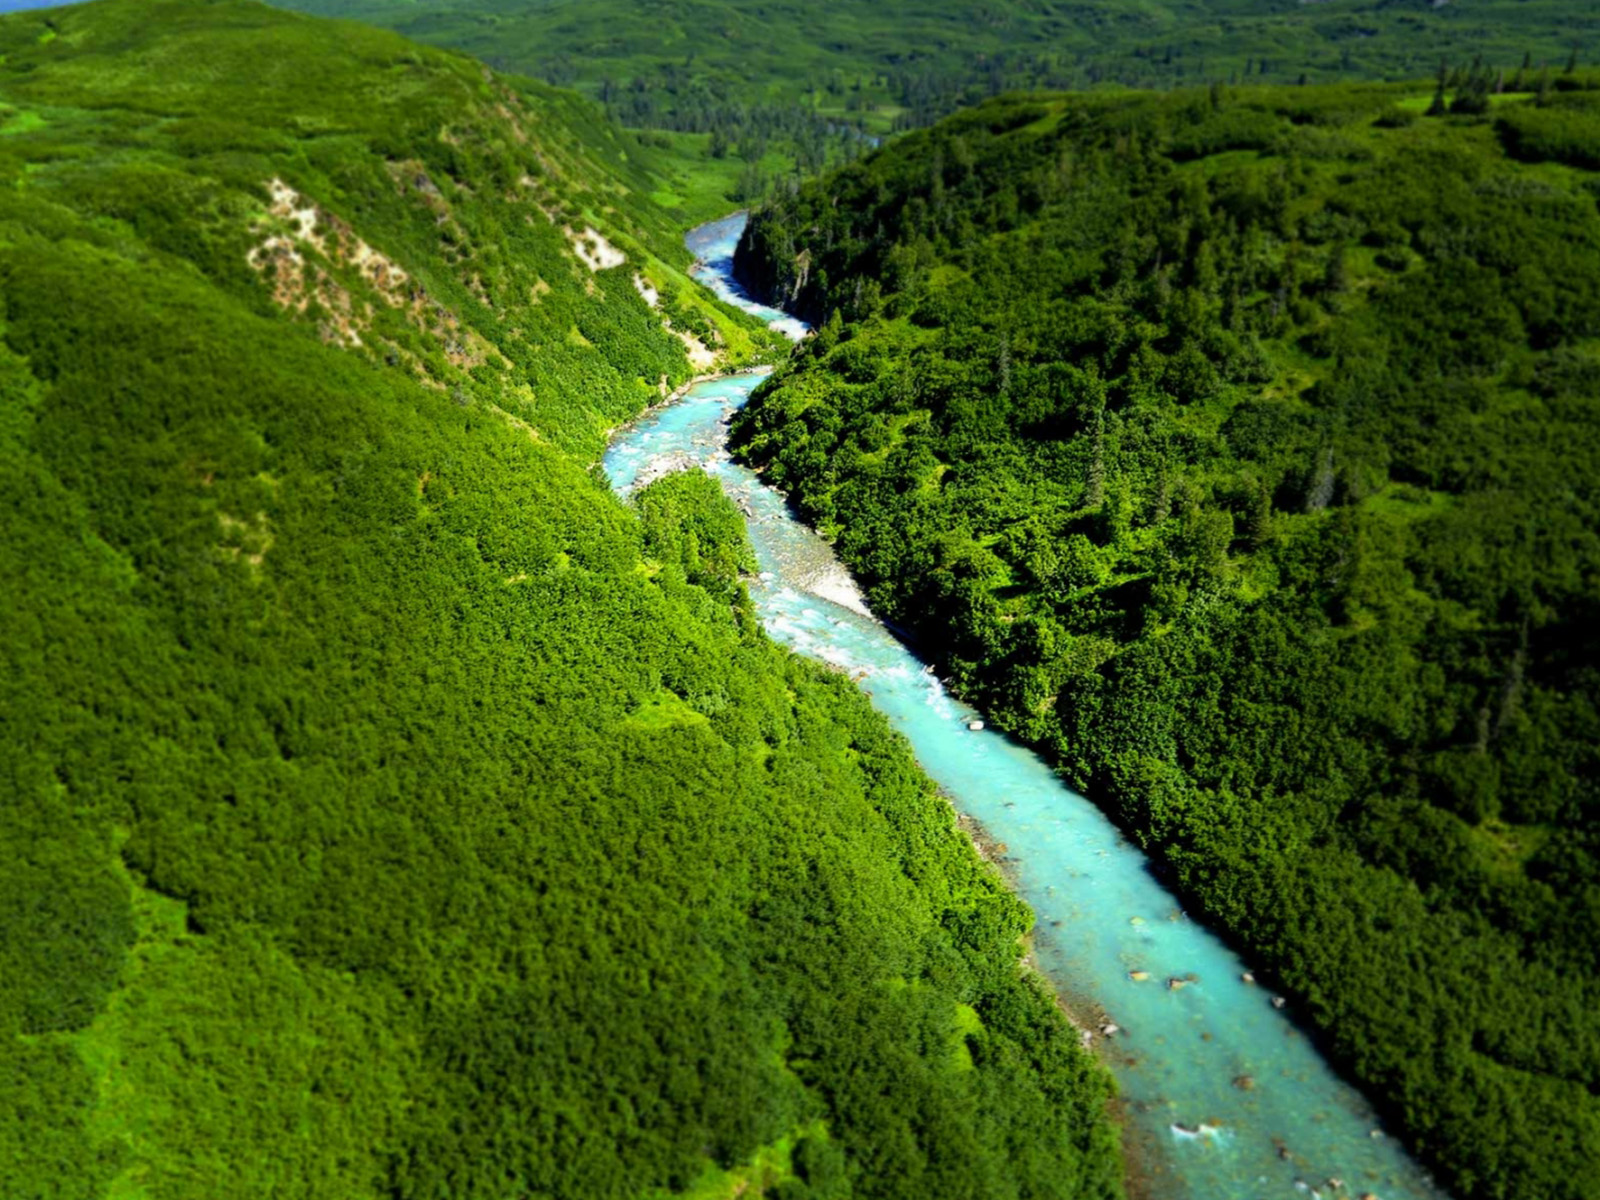 Aerial view of a clear blue river in the Tordrillo Mountains surrounded by green trees.